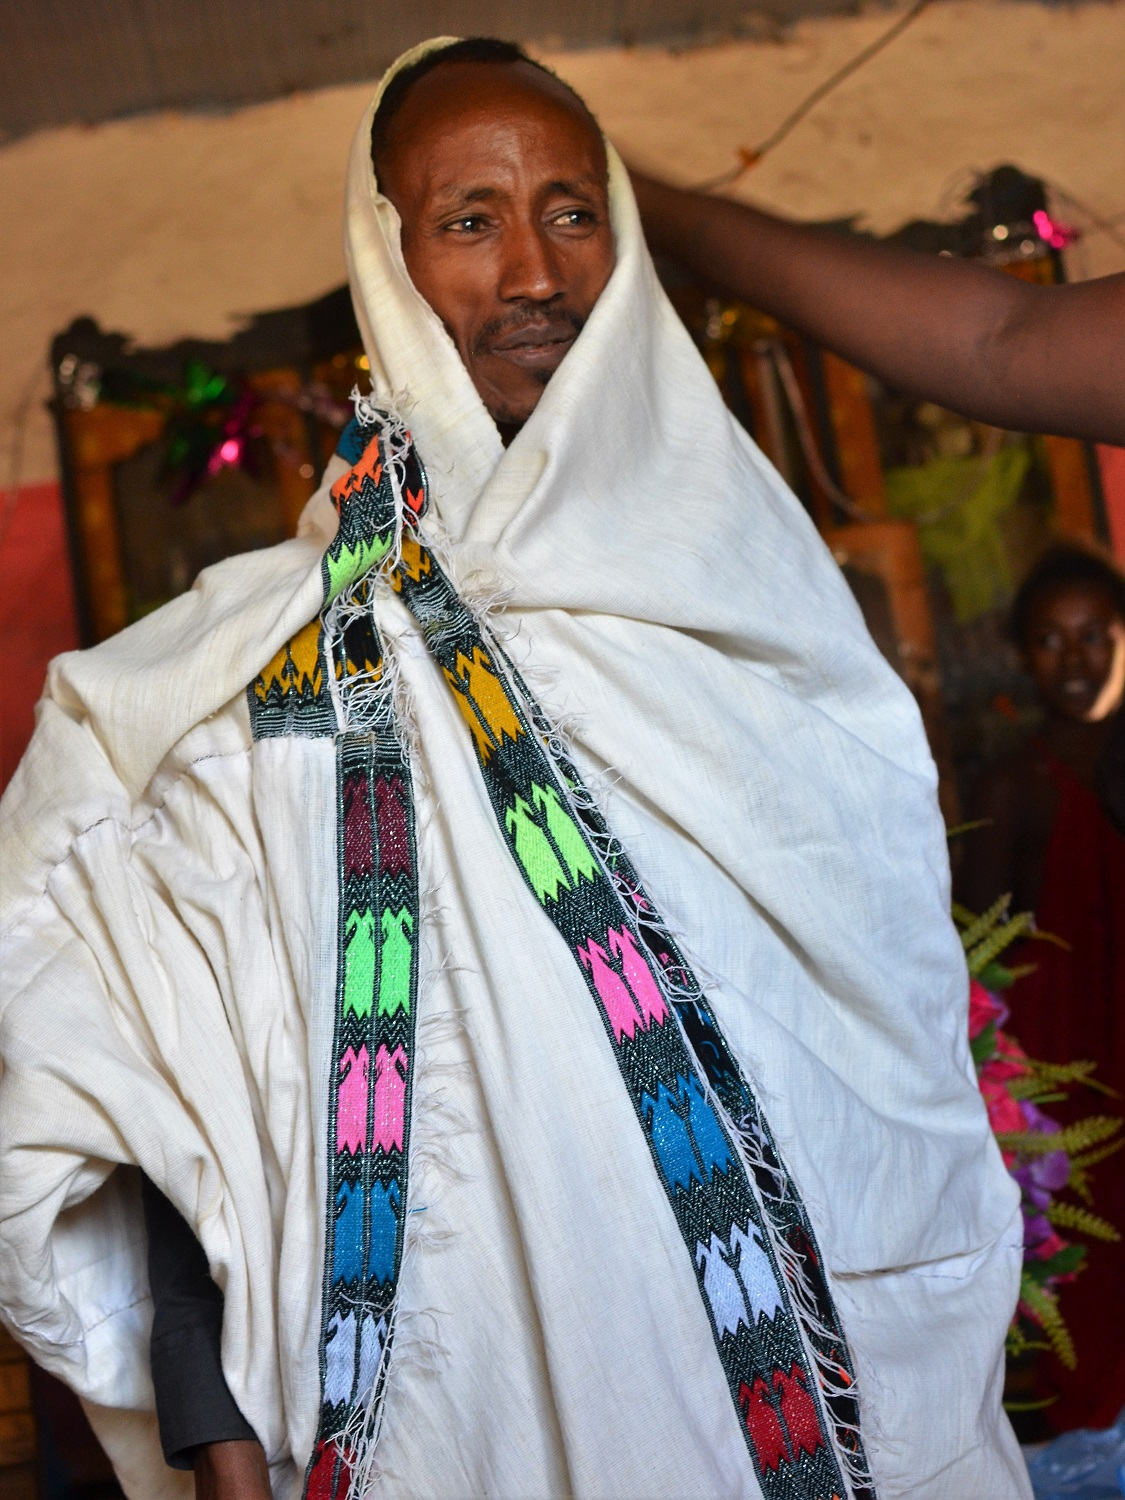 Cotton clothing, scarves and wraps are popular amongst Ethiopians